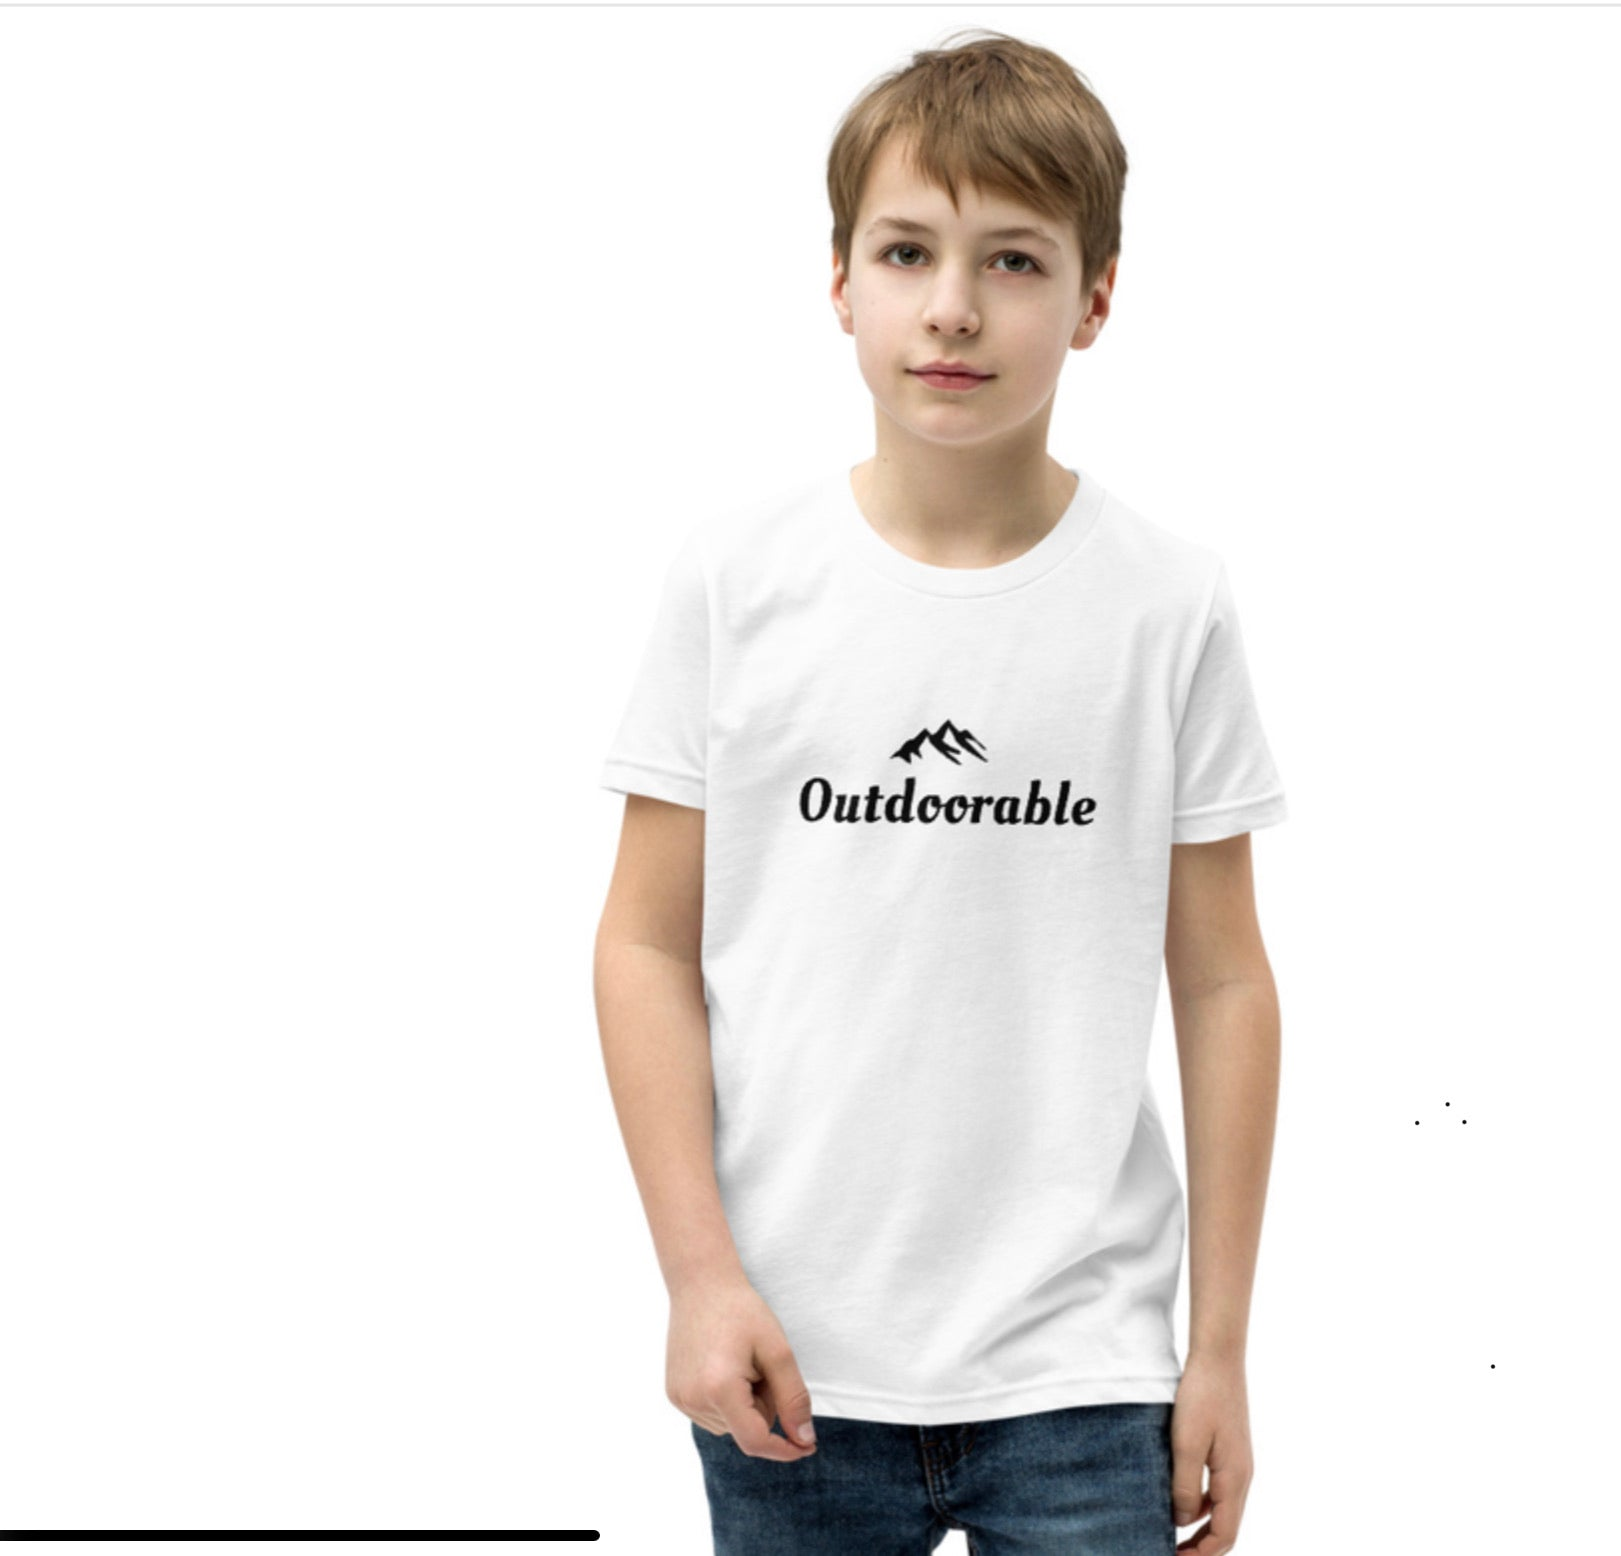 Outdoorable Tee